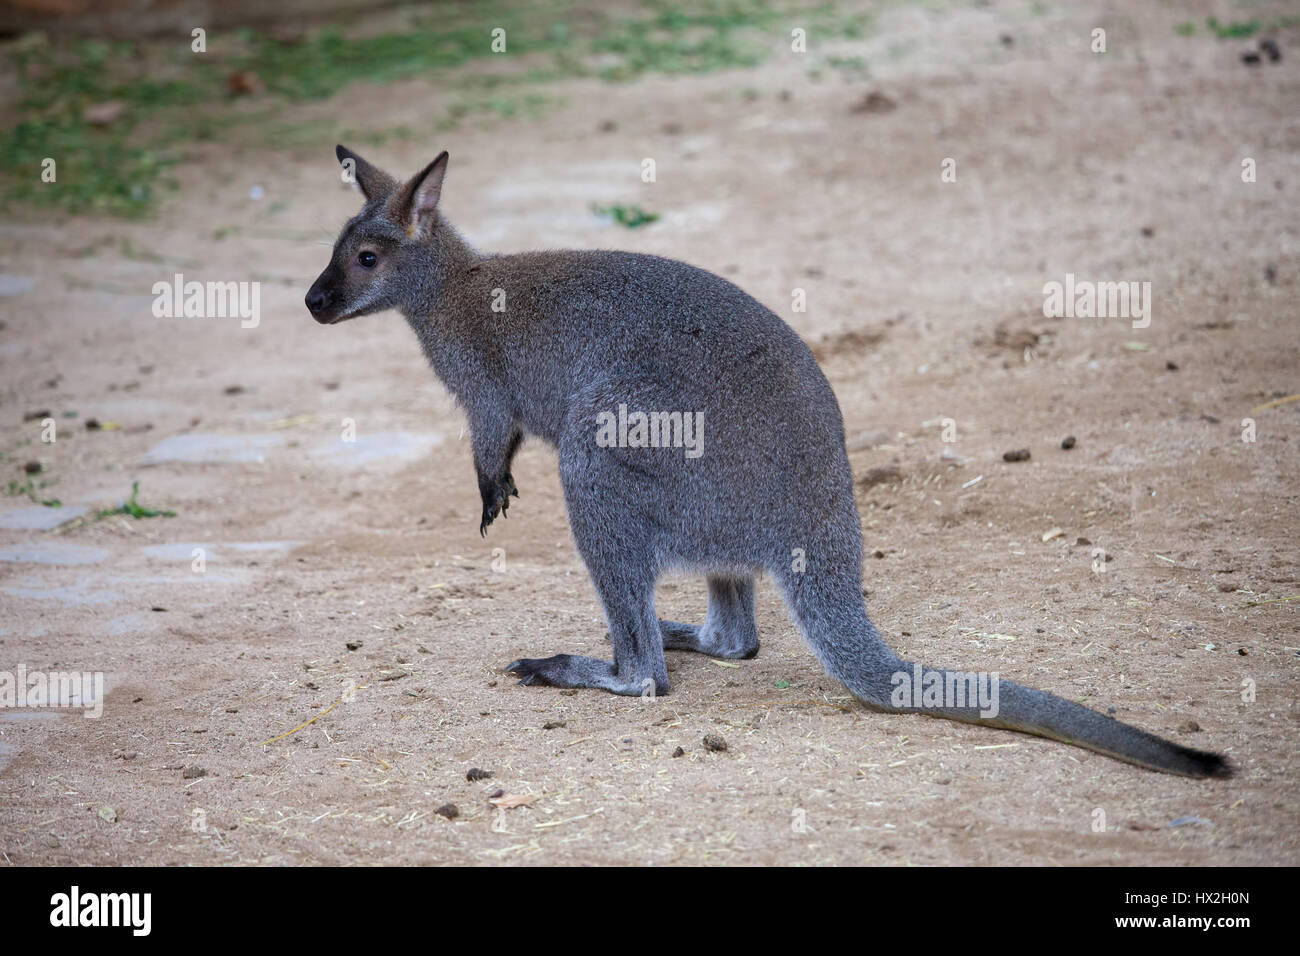 Red-necked wallaby (Macropus rufogriseus wallaby de Bennett), dans le Zoo de Barcelone, Espagne Photo Stock